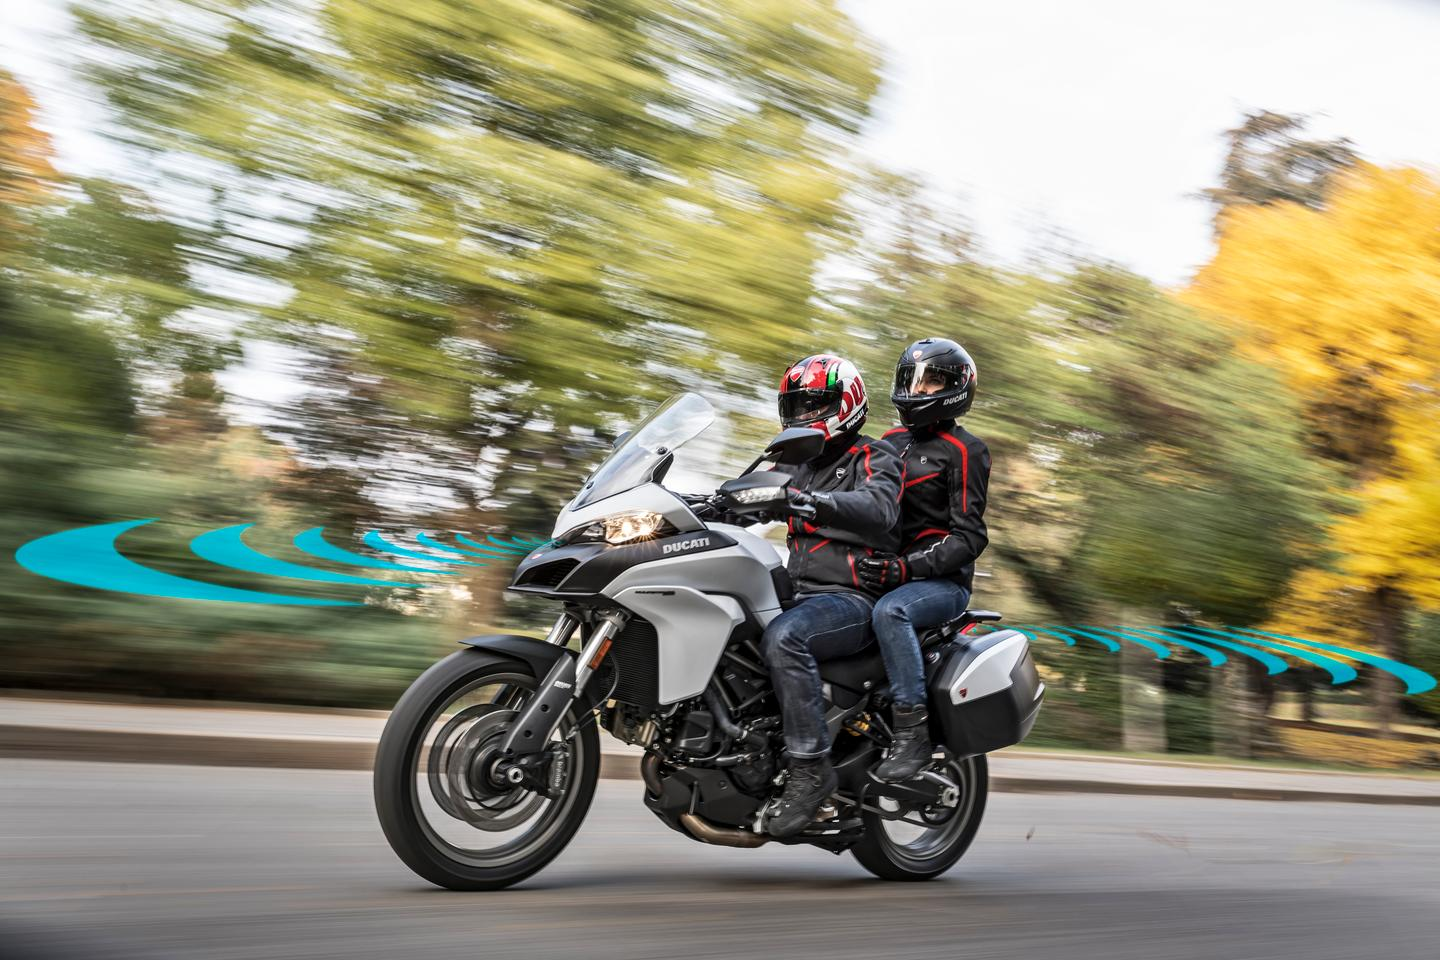 By 2020, Ducati will have a model available with front and rear radars, enabling blind spot warnings, collision warnings and adaptive cruise control